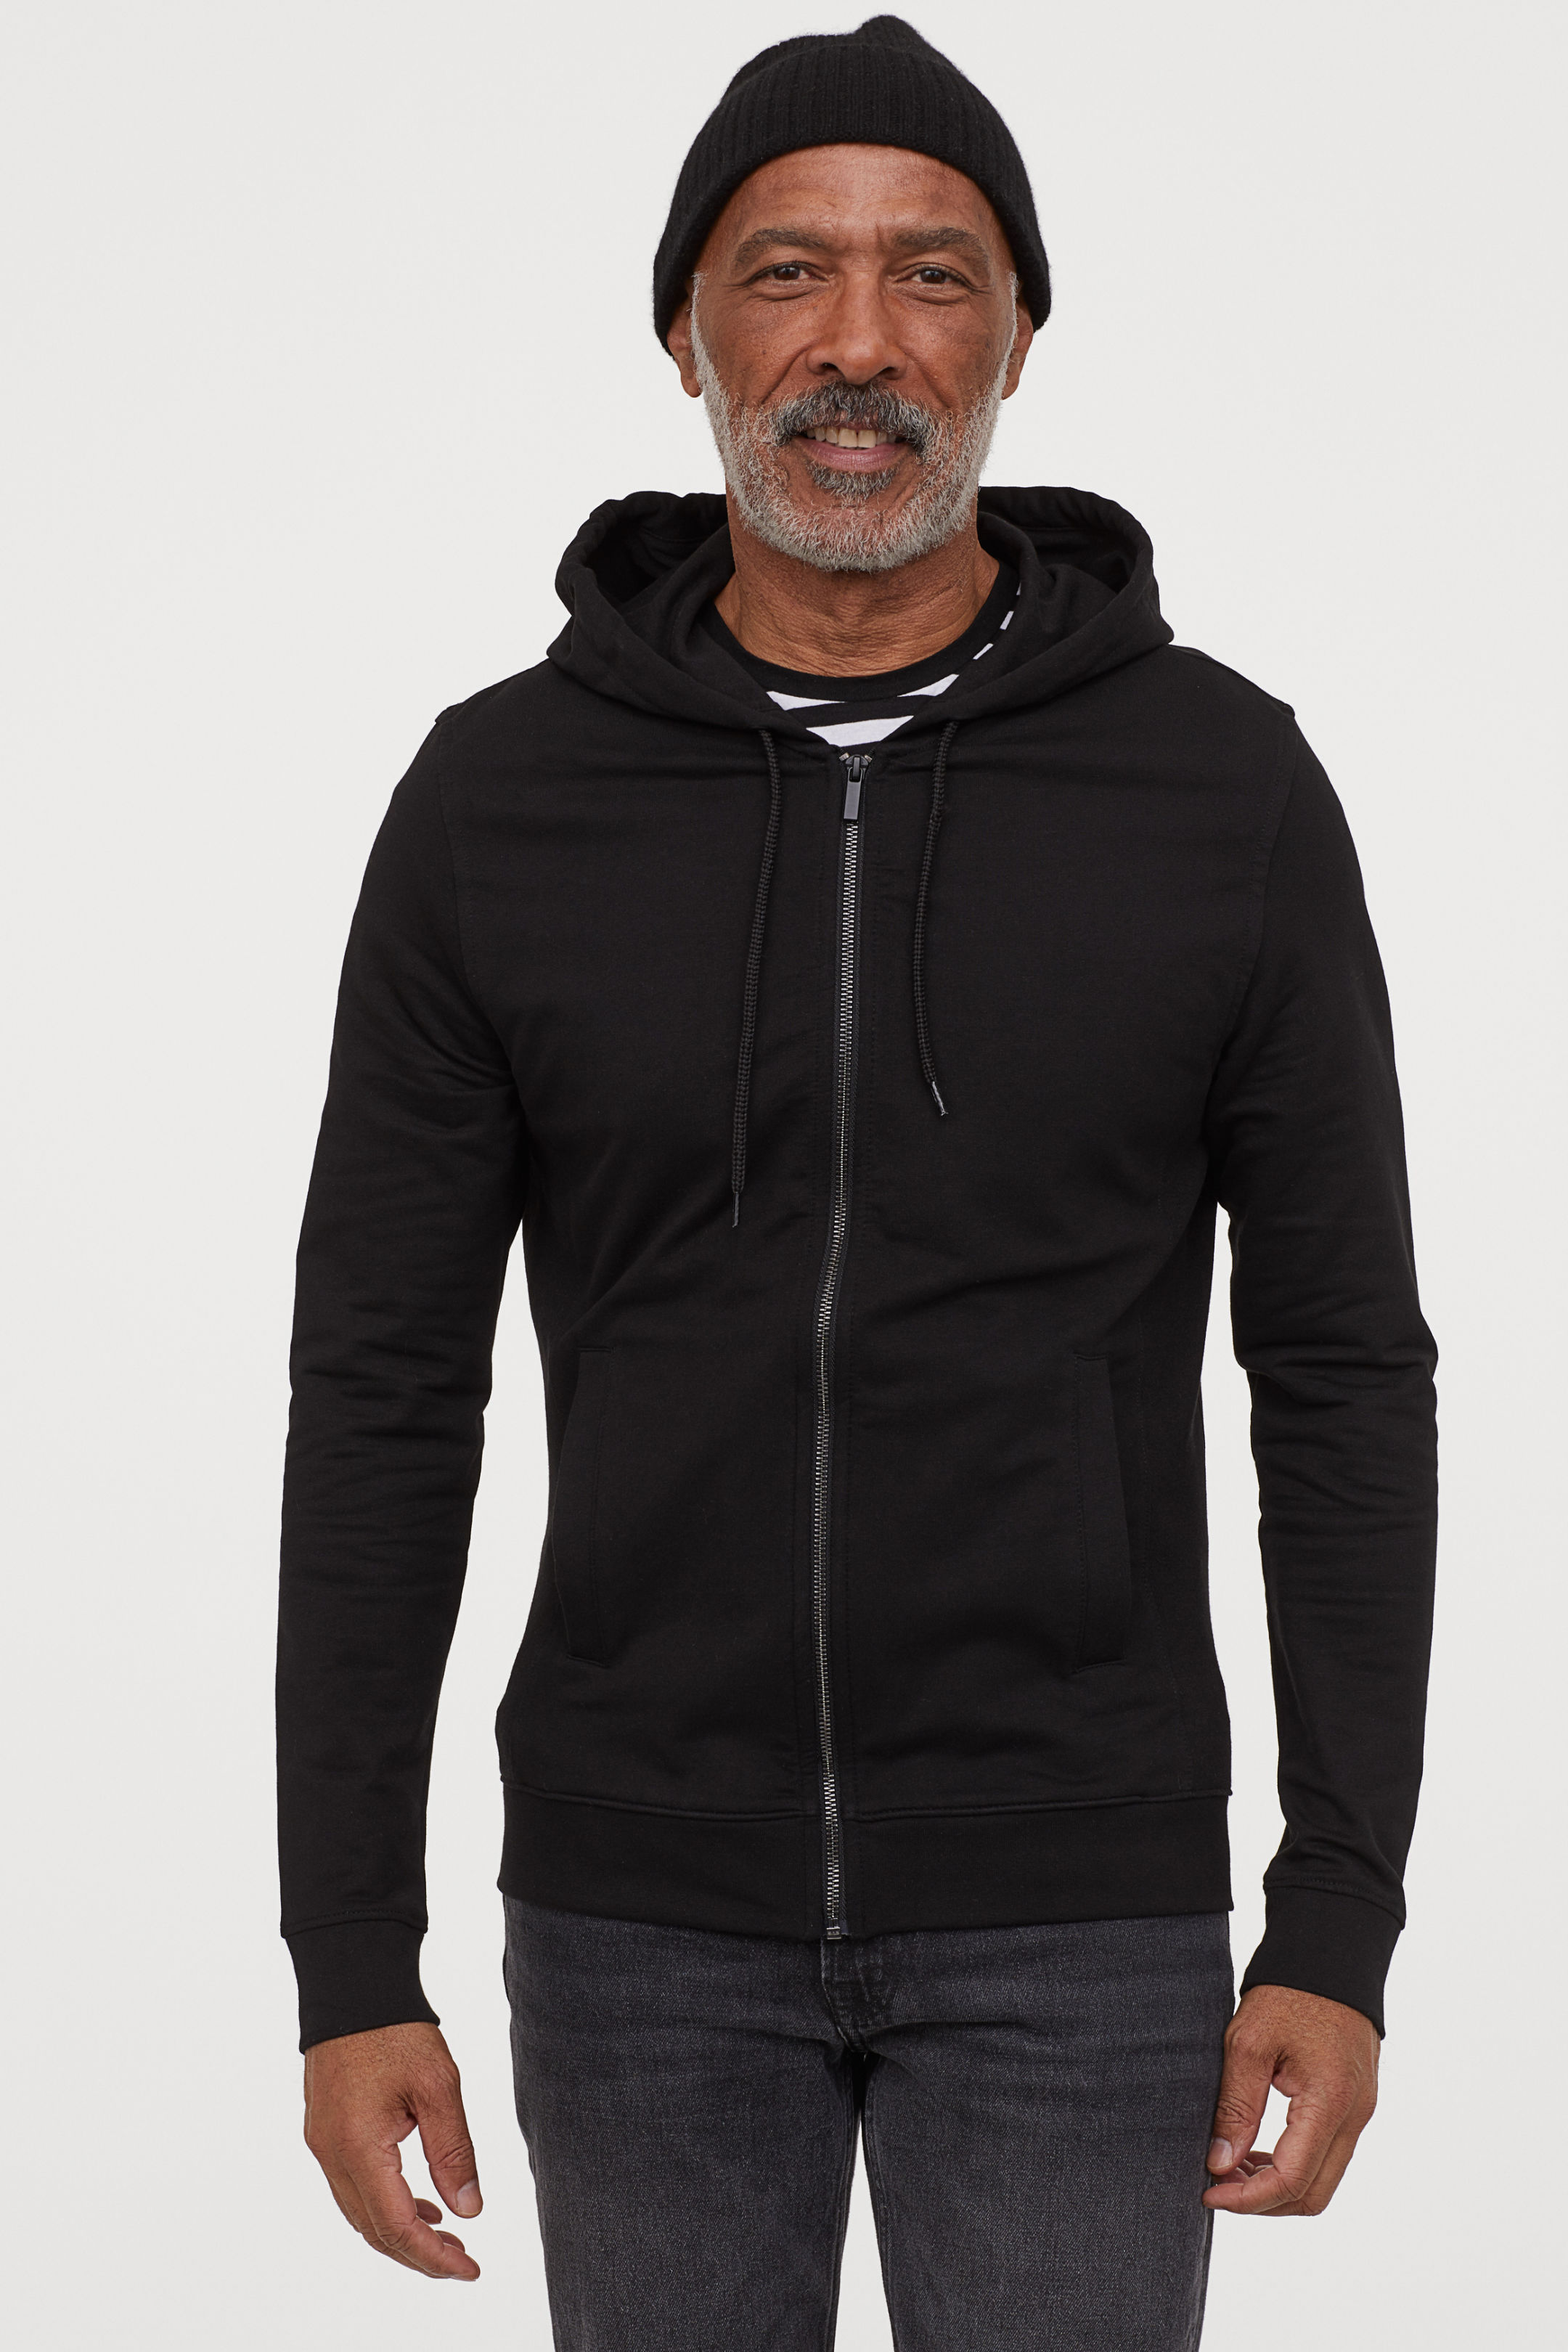 Hooded Sweatshirt Slim Fit